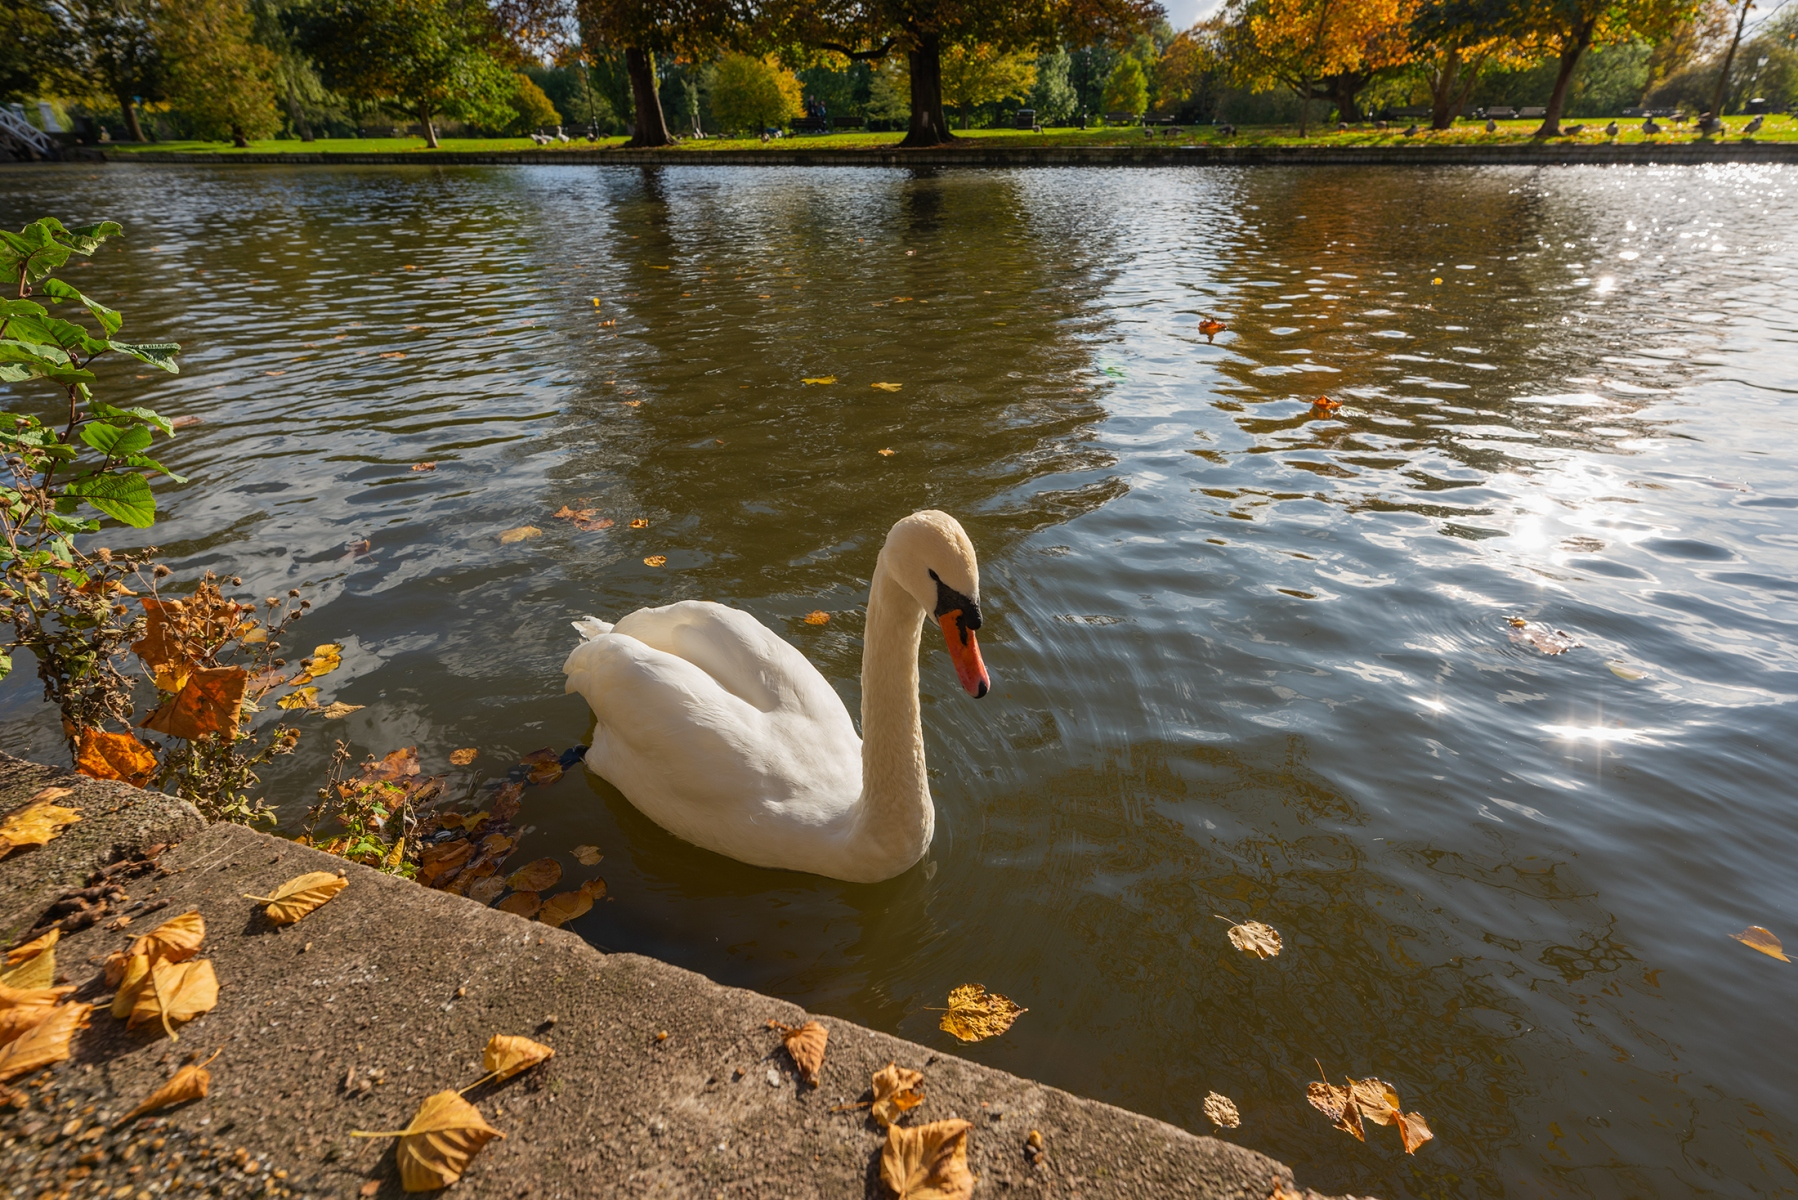 Swan on River Great Ouse, The Embankment, Bedford in Autumn